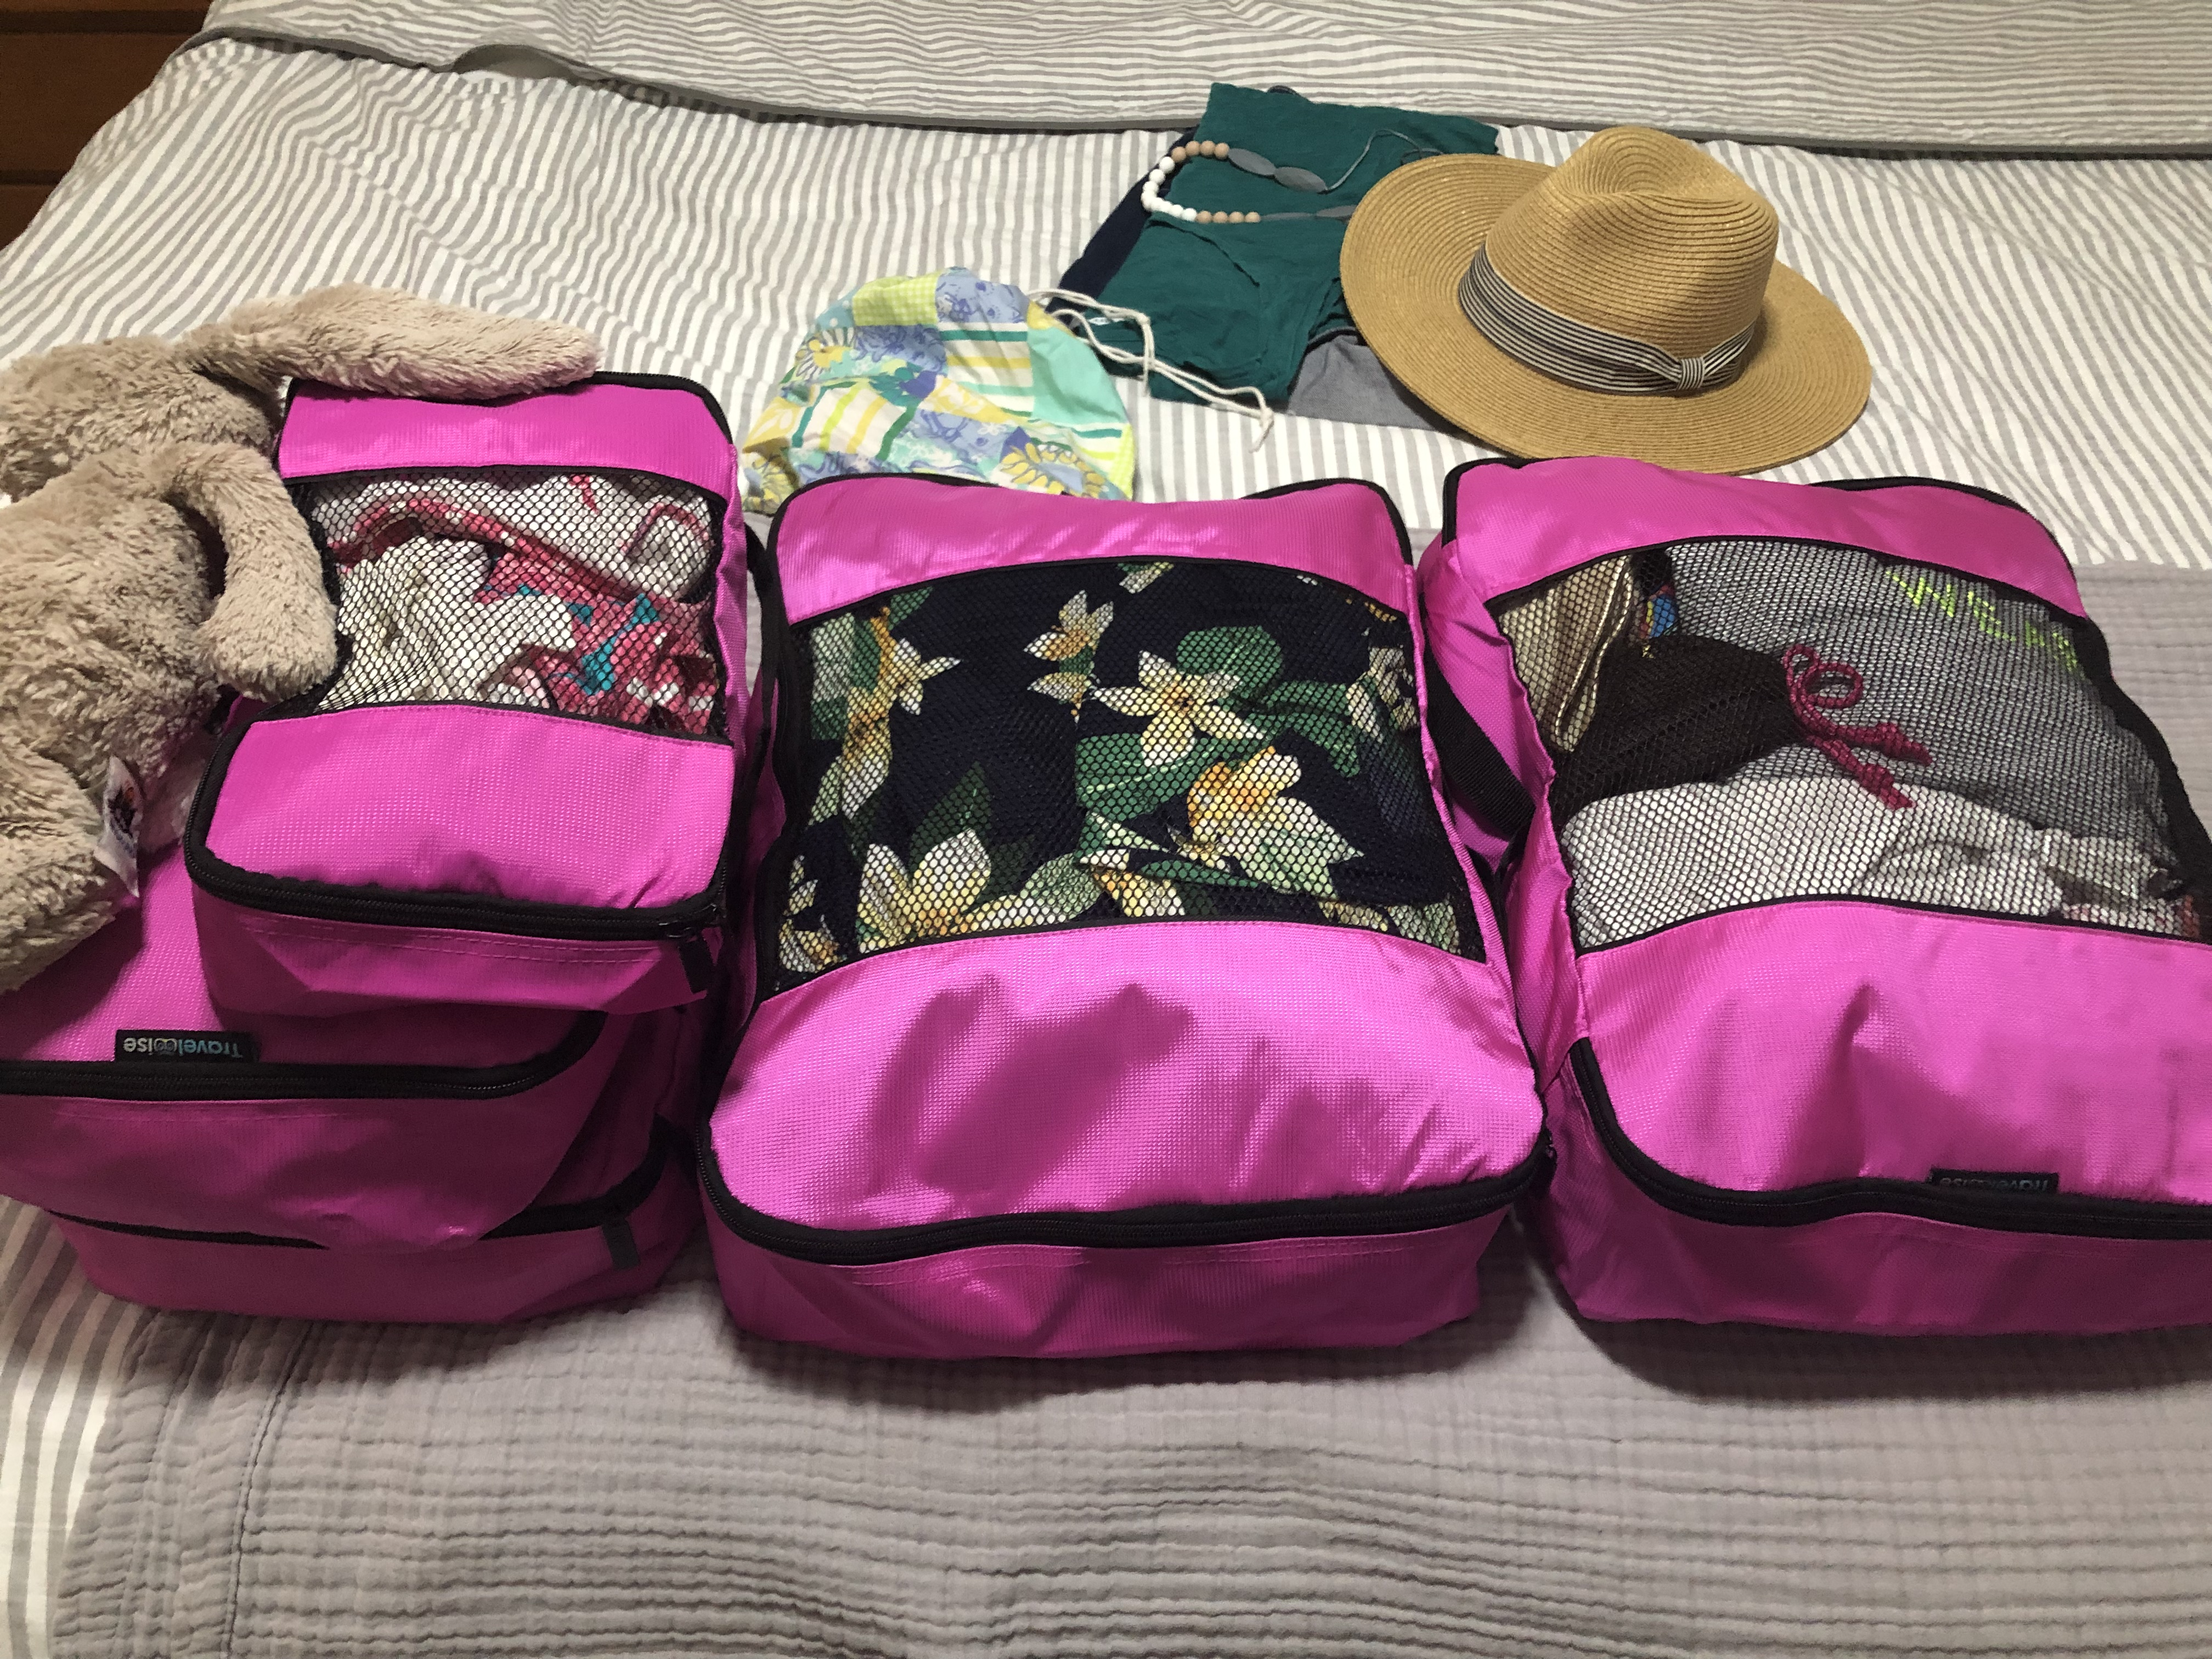 Traveling with Baby- Packing List